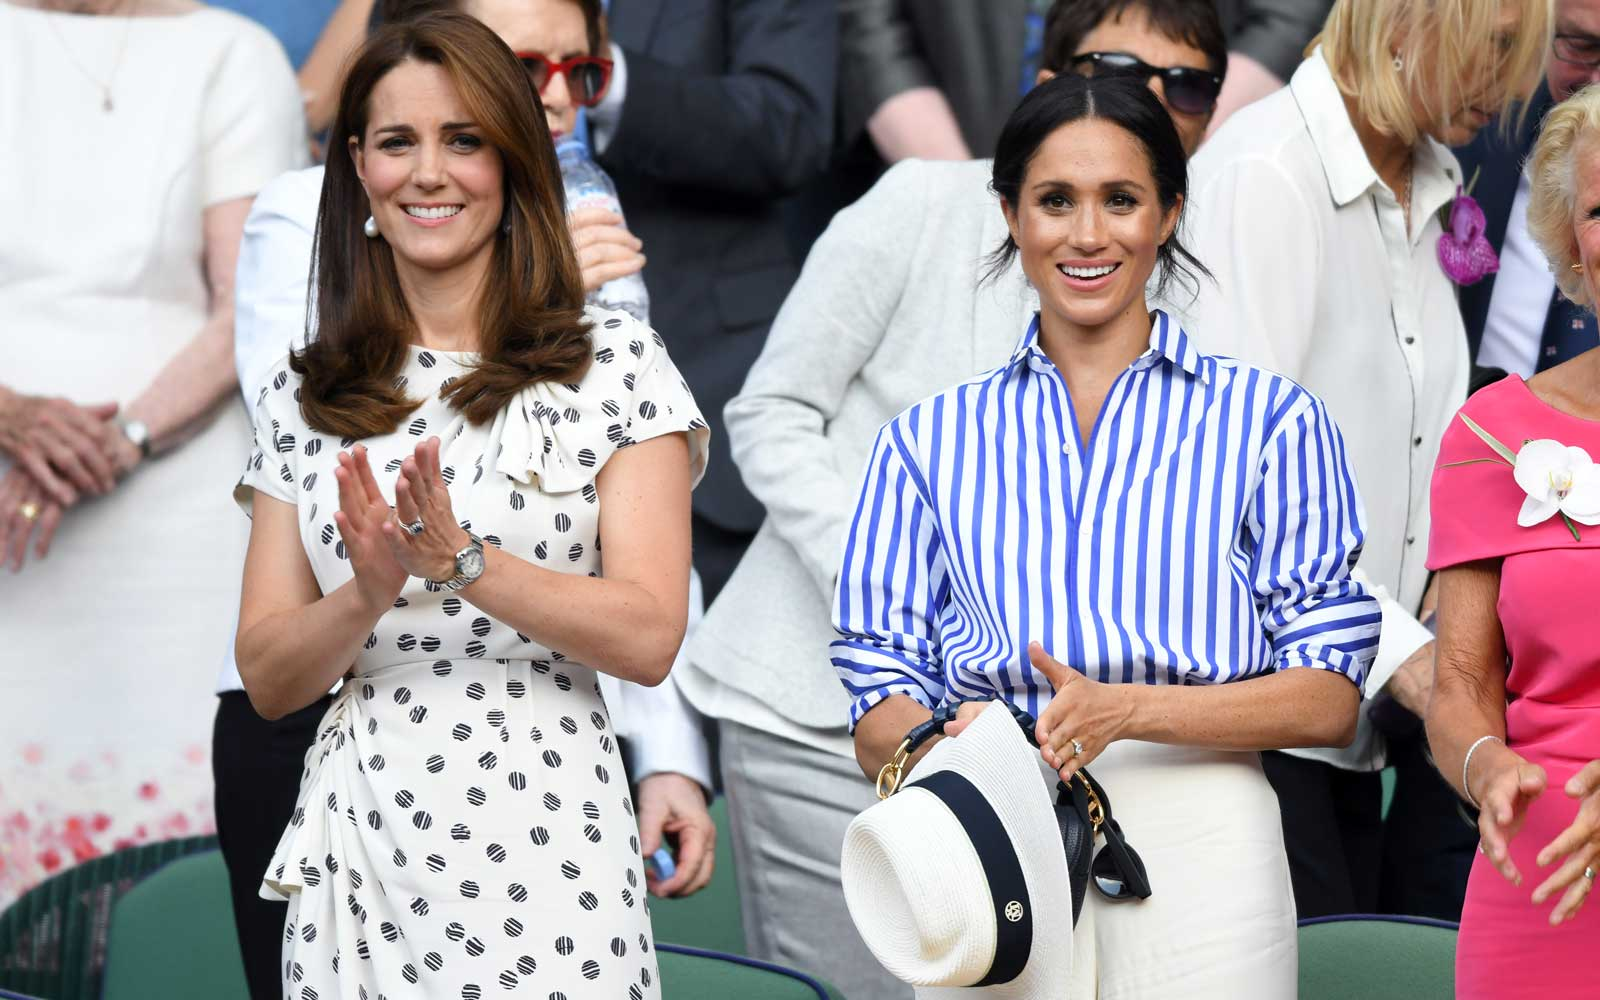 Meghan Markle Brought Her Favorite Hat to Wimbledon but Wasn't Allowed to Wear It